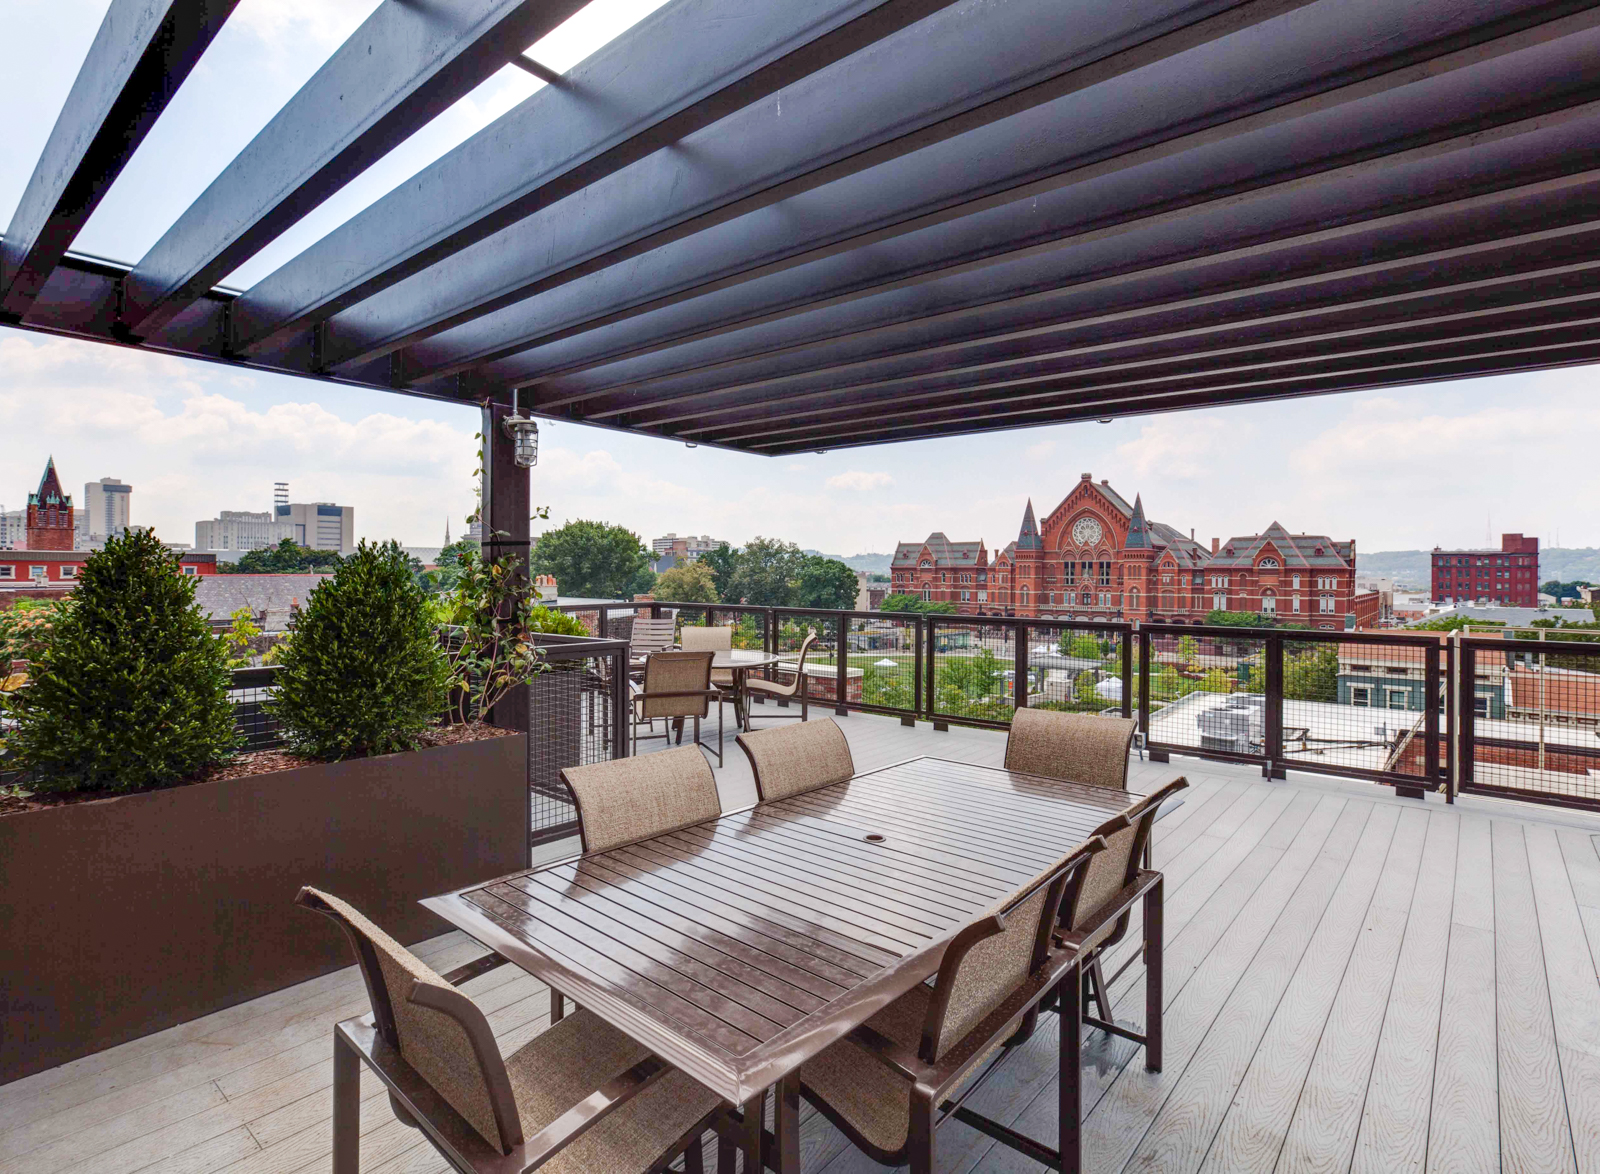 Nicolay Lofts Roof Deck 2